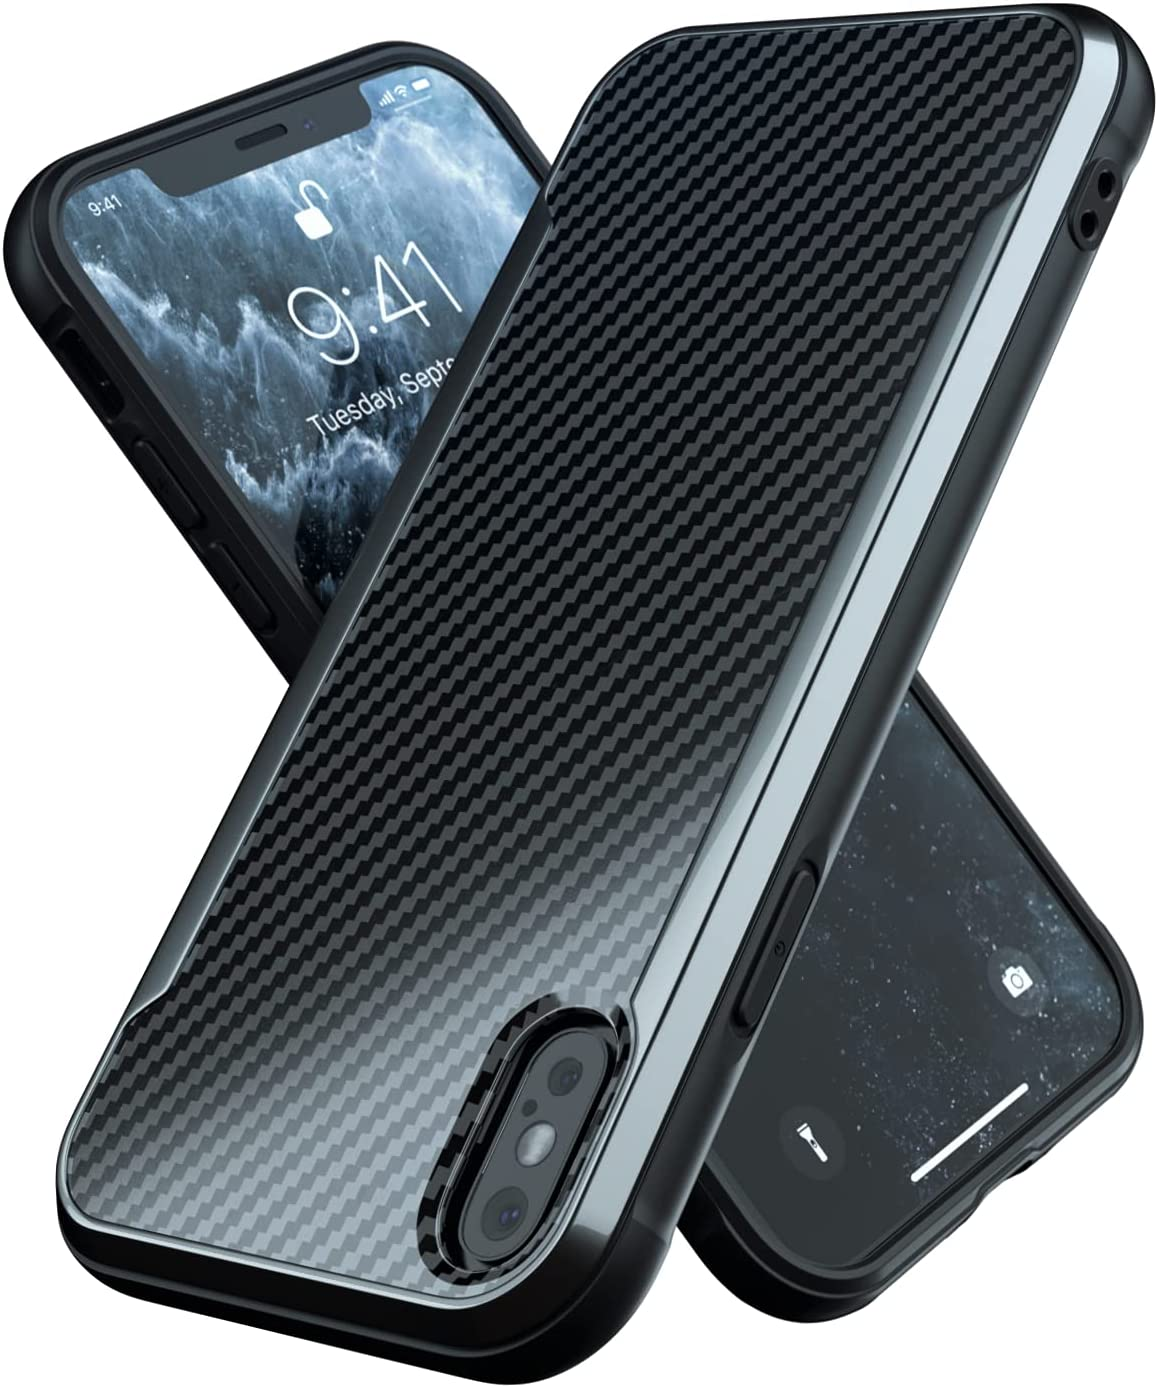 Nicexx Designed for iPhone Xs Max Case with Carbon Fiber Pattern, 12ft. Drop Tested, Wireless Charging Compatible - Black